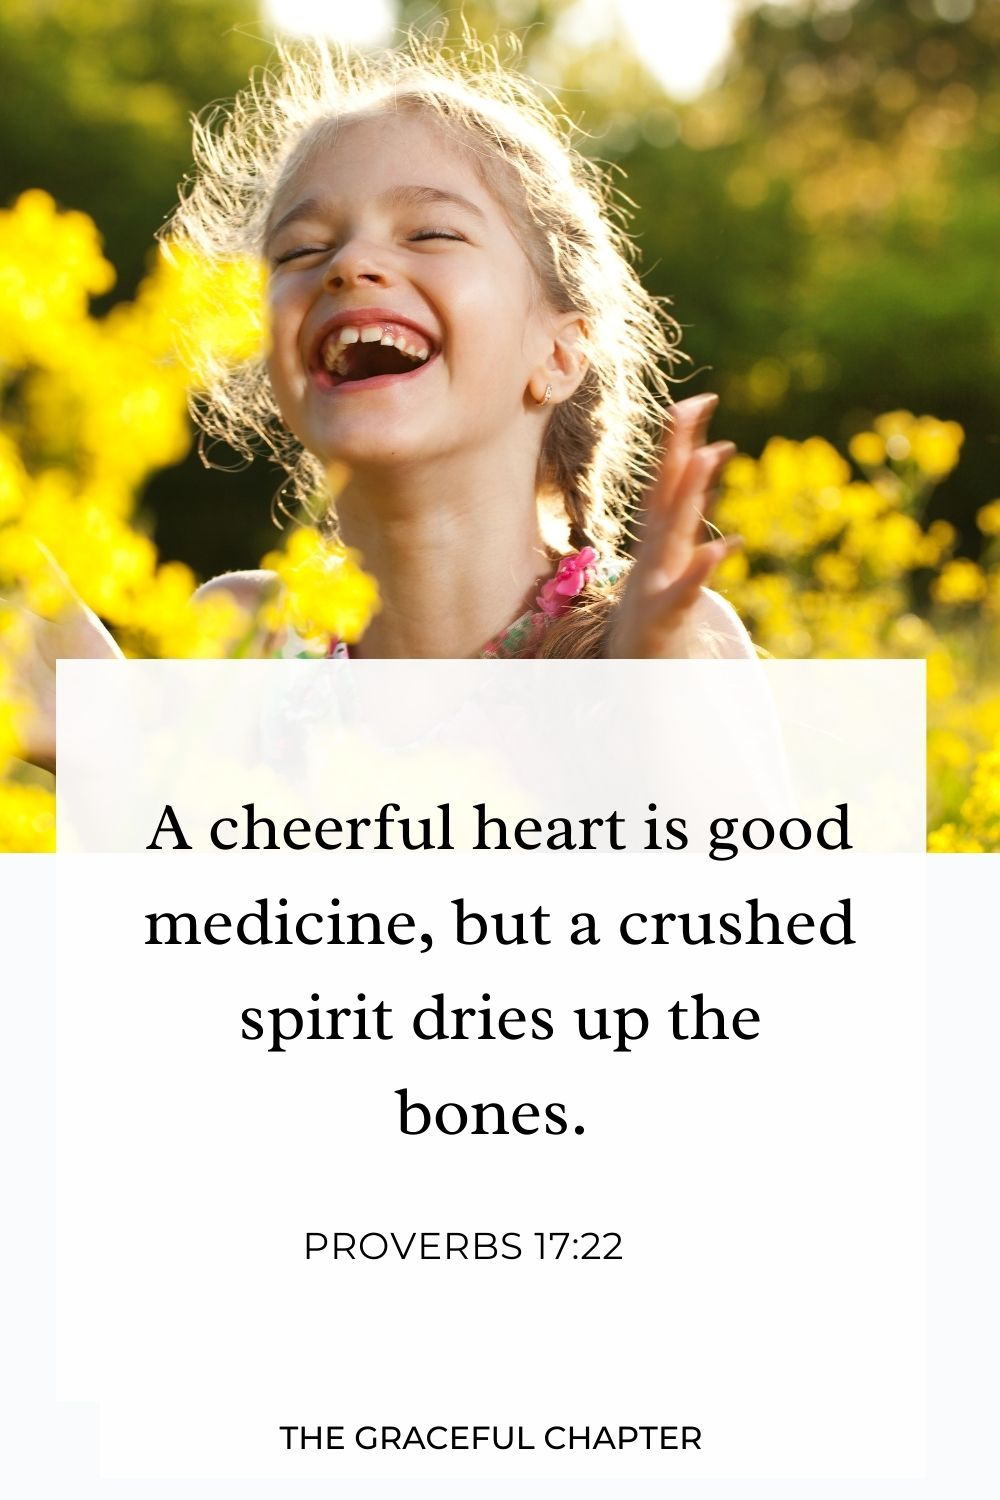 A cheerful heart is good medicine, but a crushed spirit dries up the bones. Proverbs 17:22